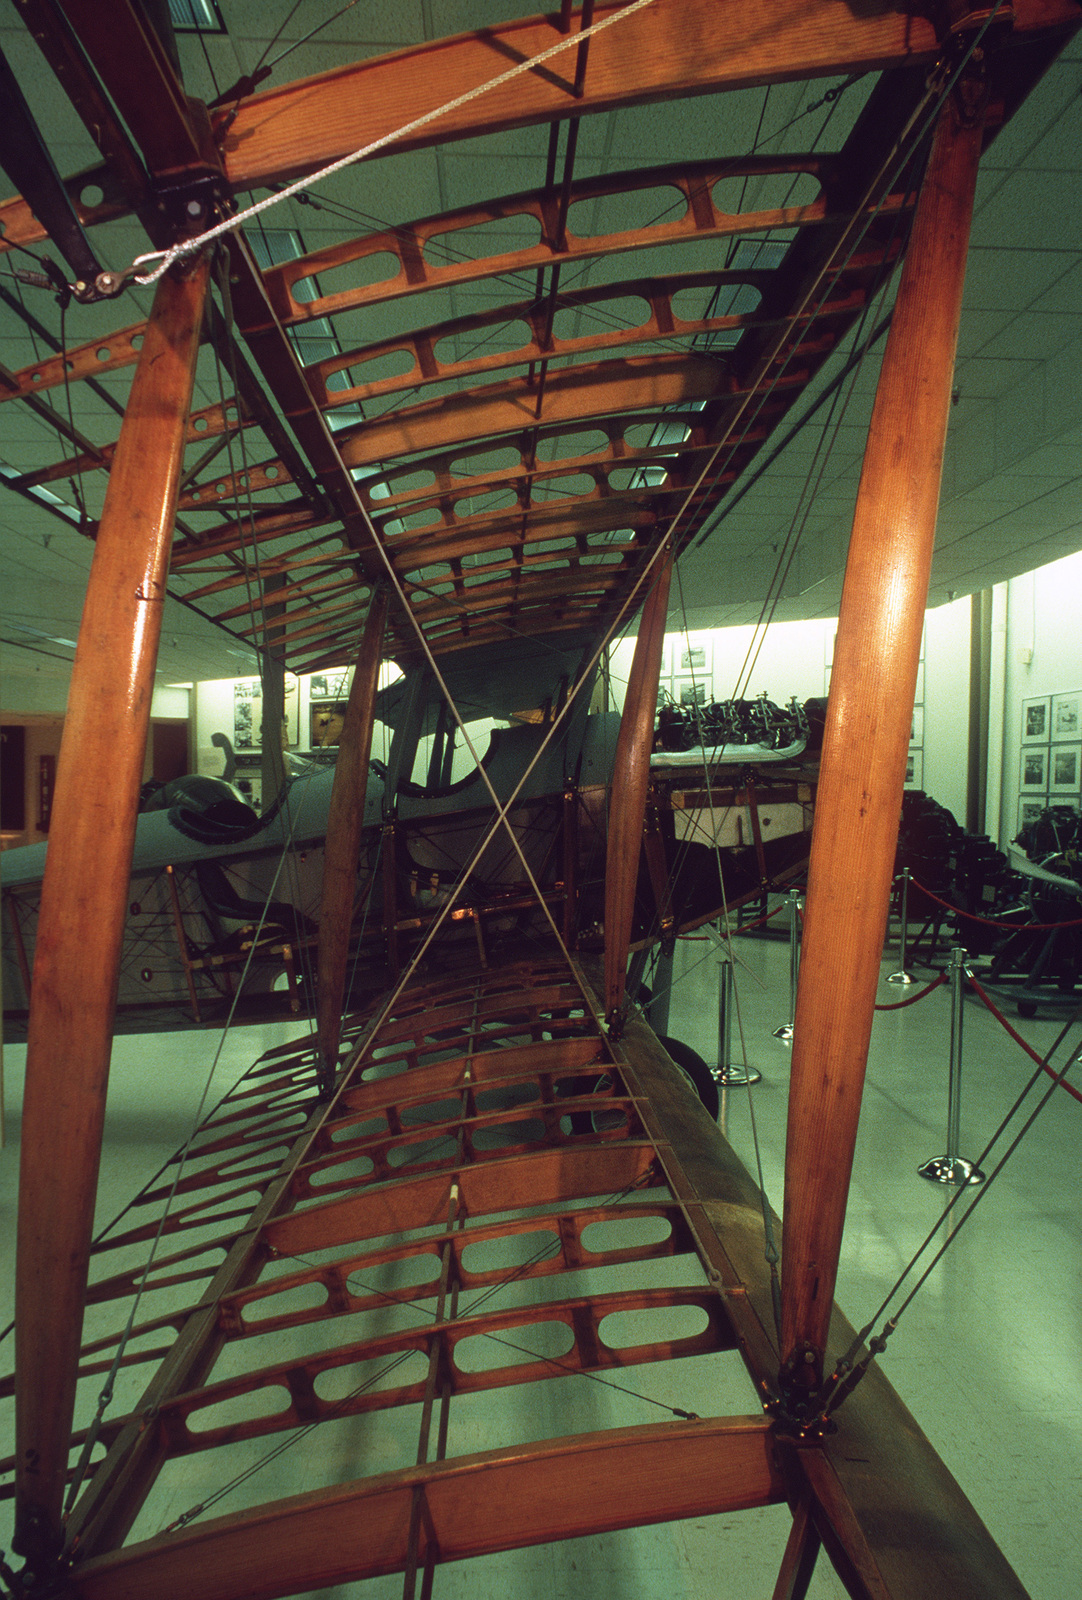 A vintage Curtiss JN model